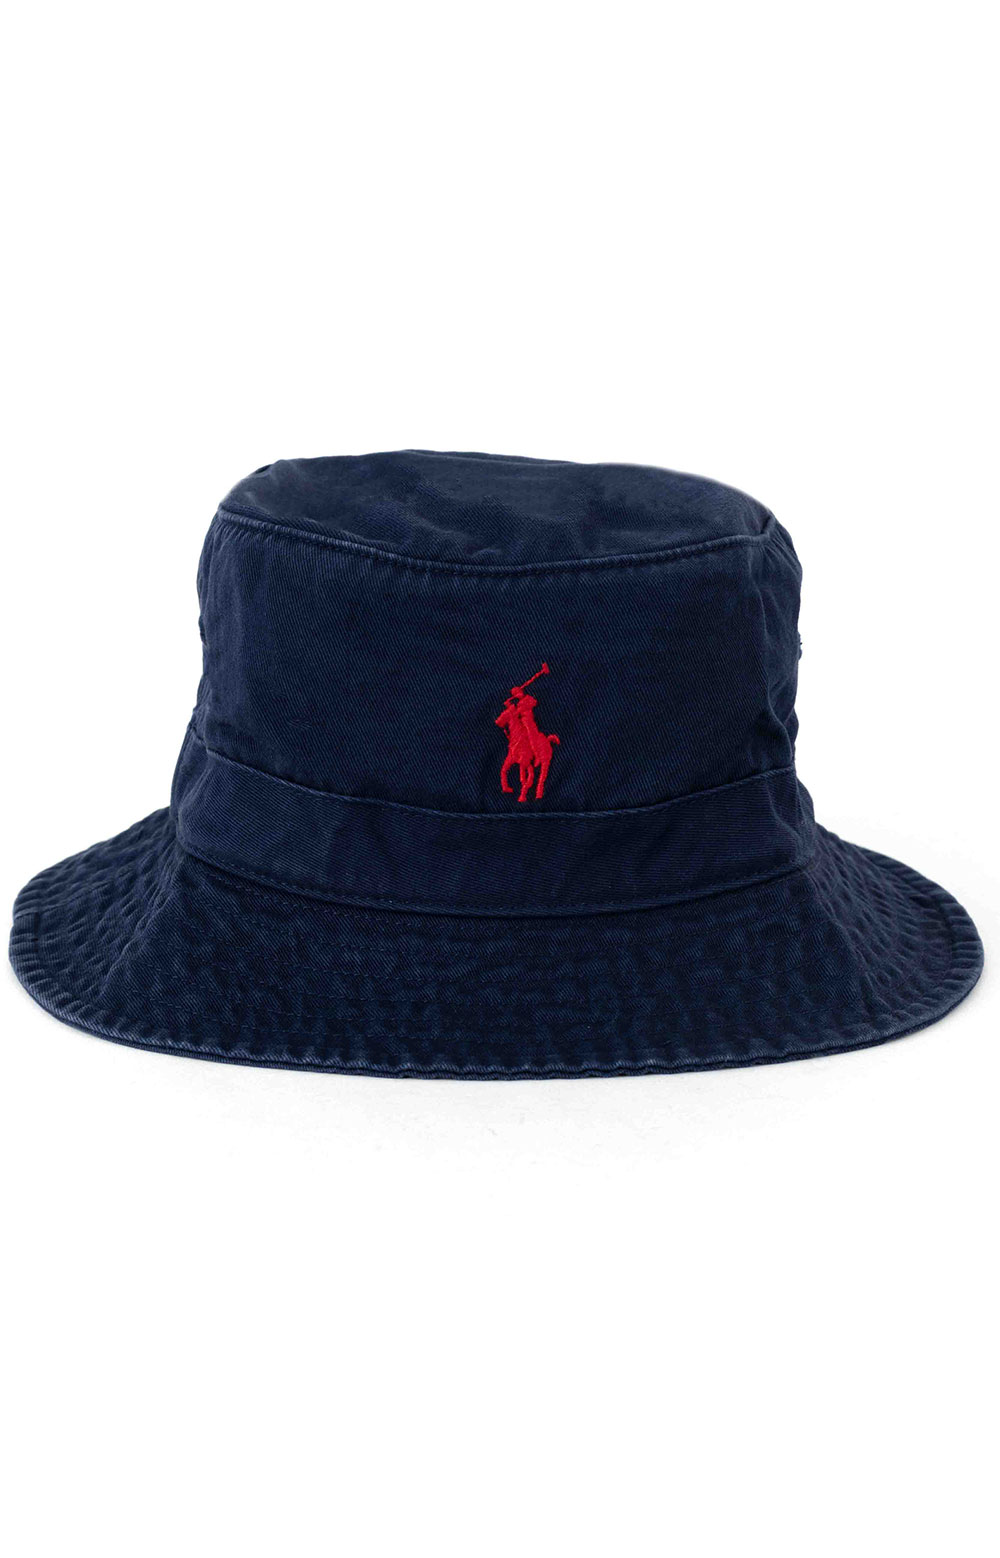 Loft Bucket Hat - Blue  2